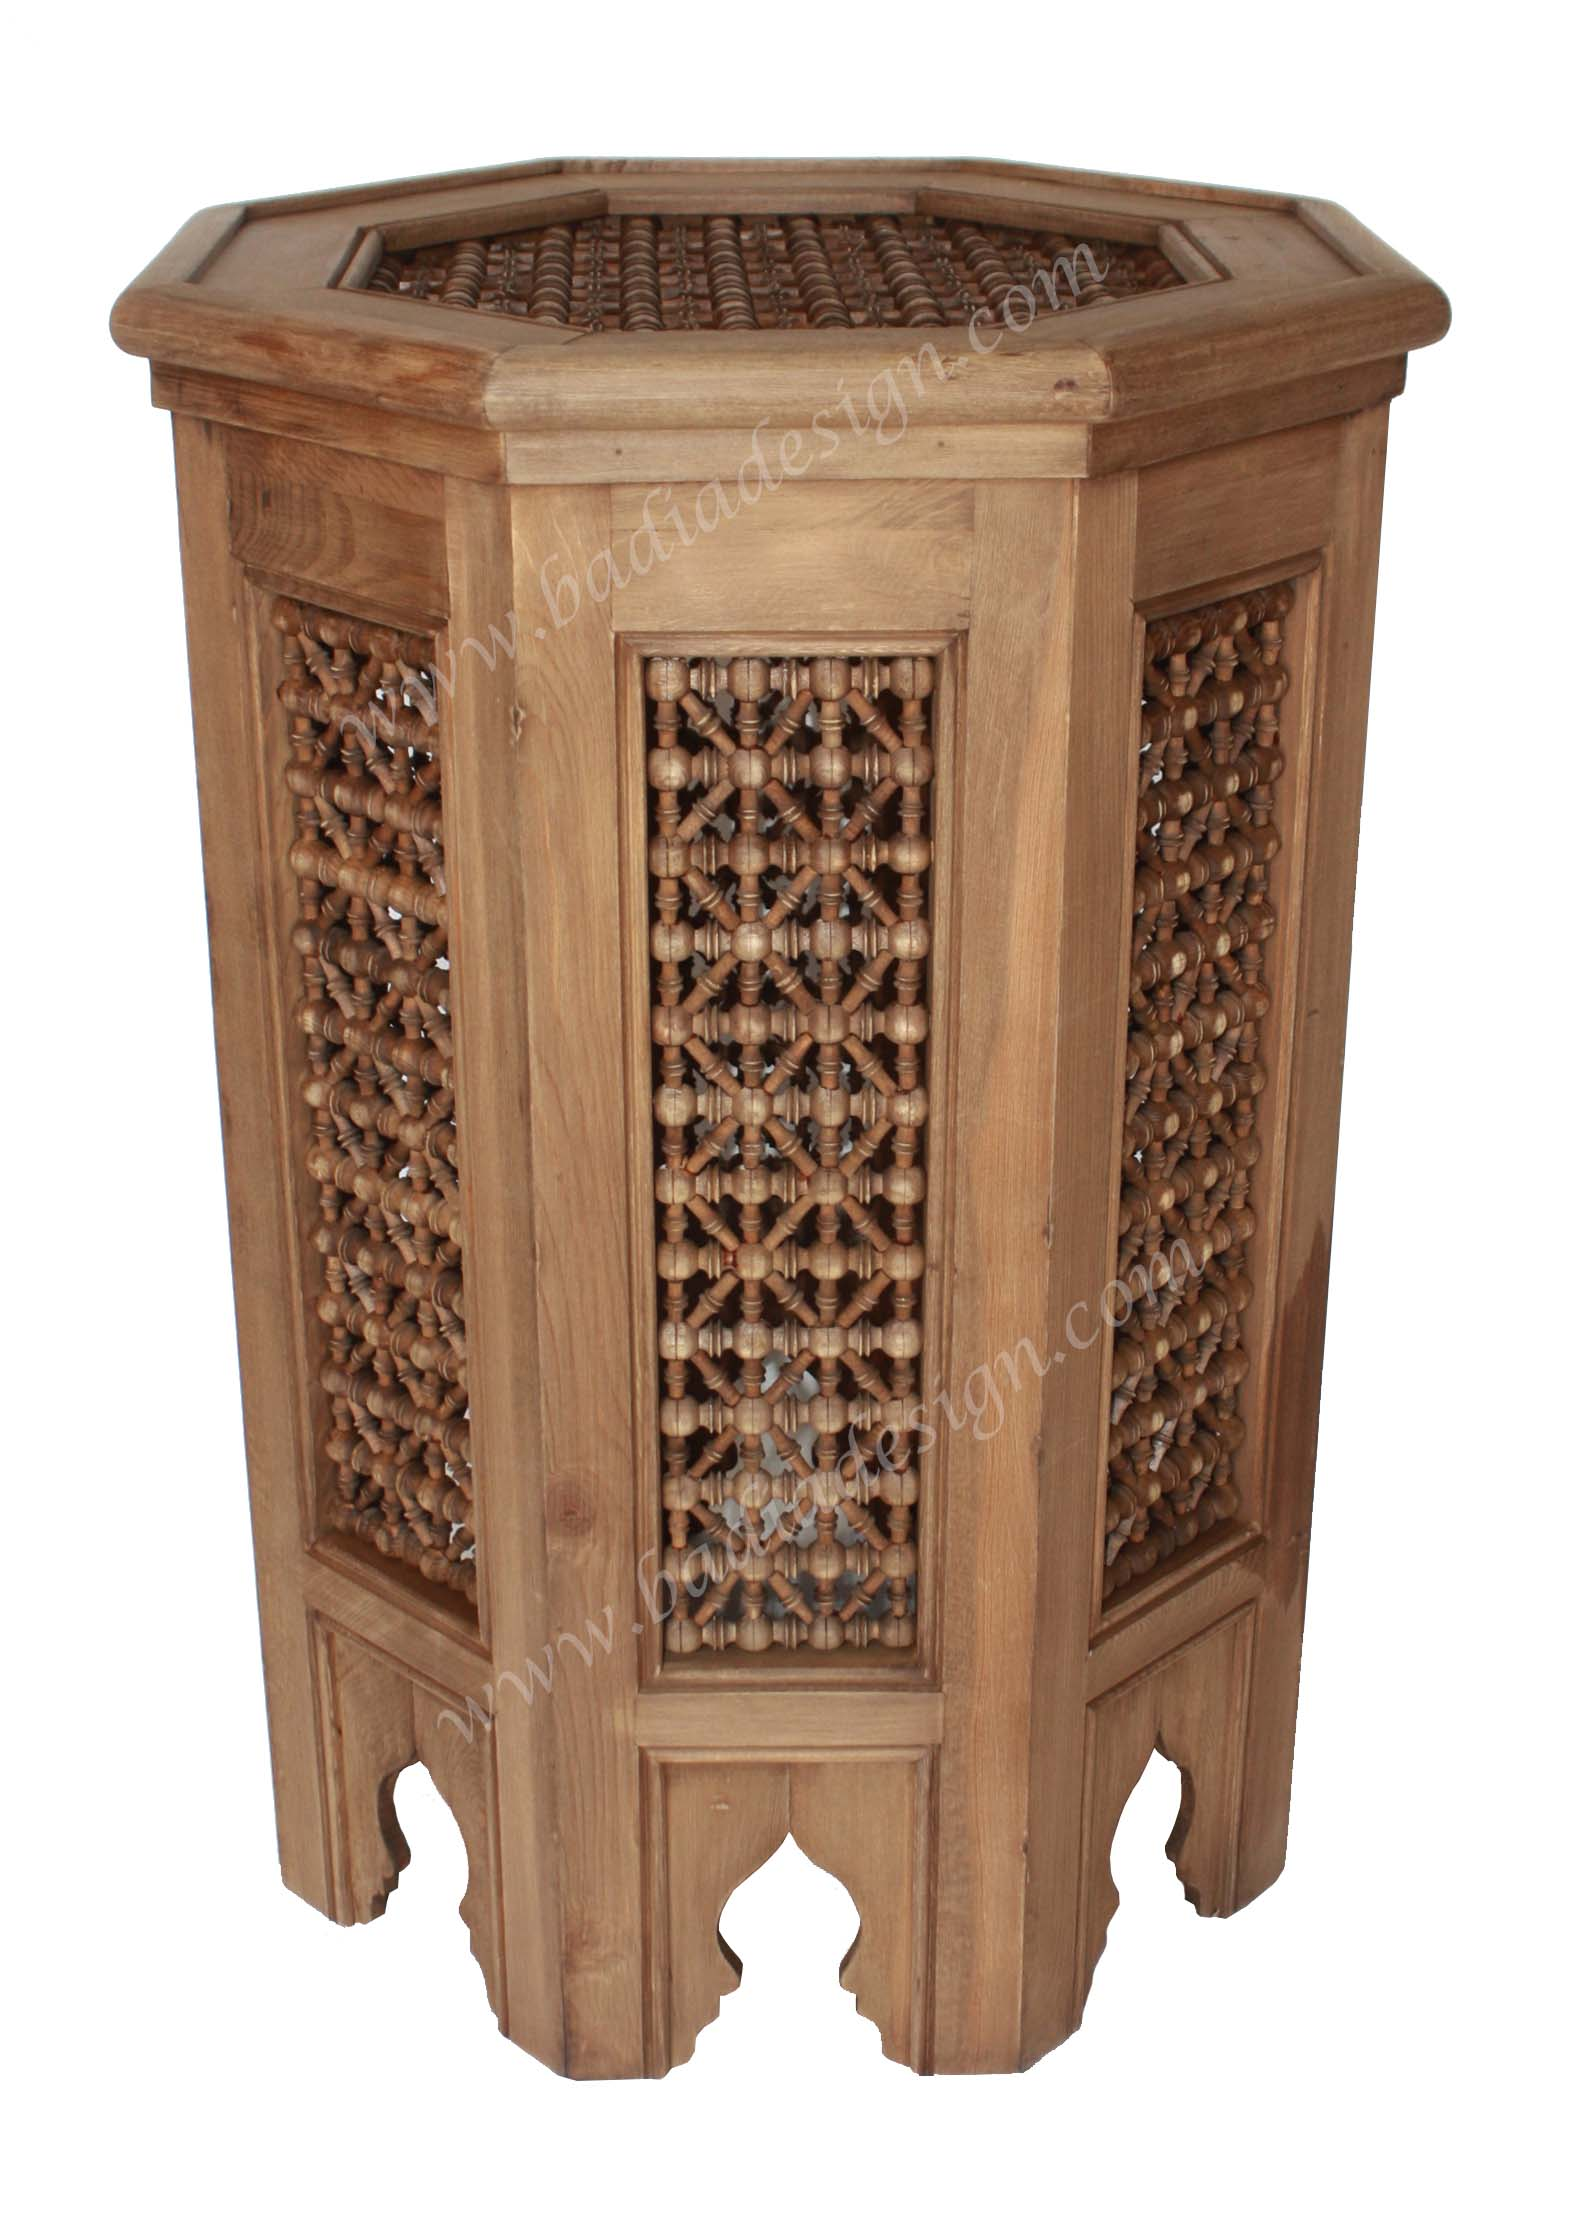 moroccan-moucharabieh-wooden-side-table-cw-st009-1.jpg